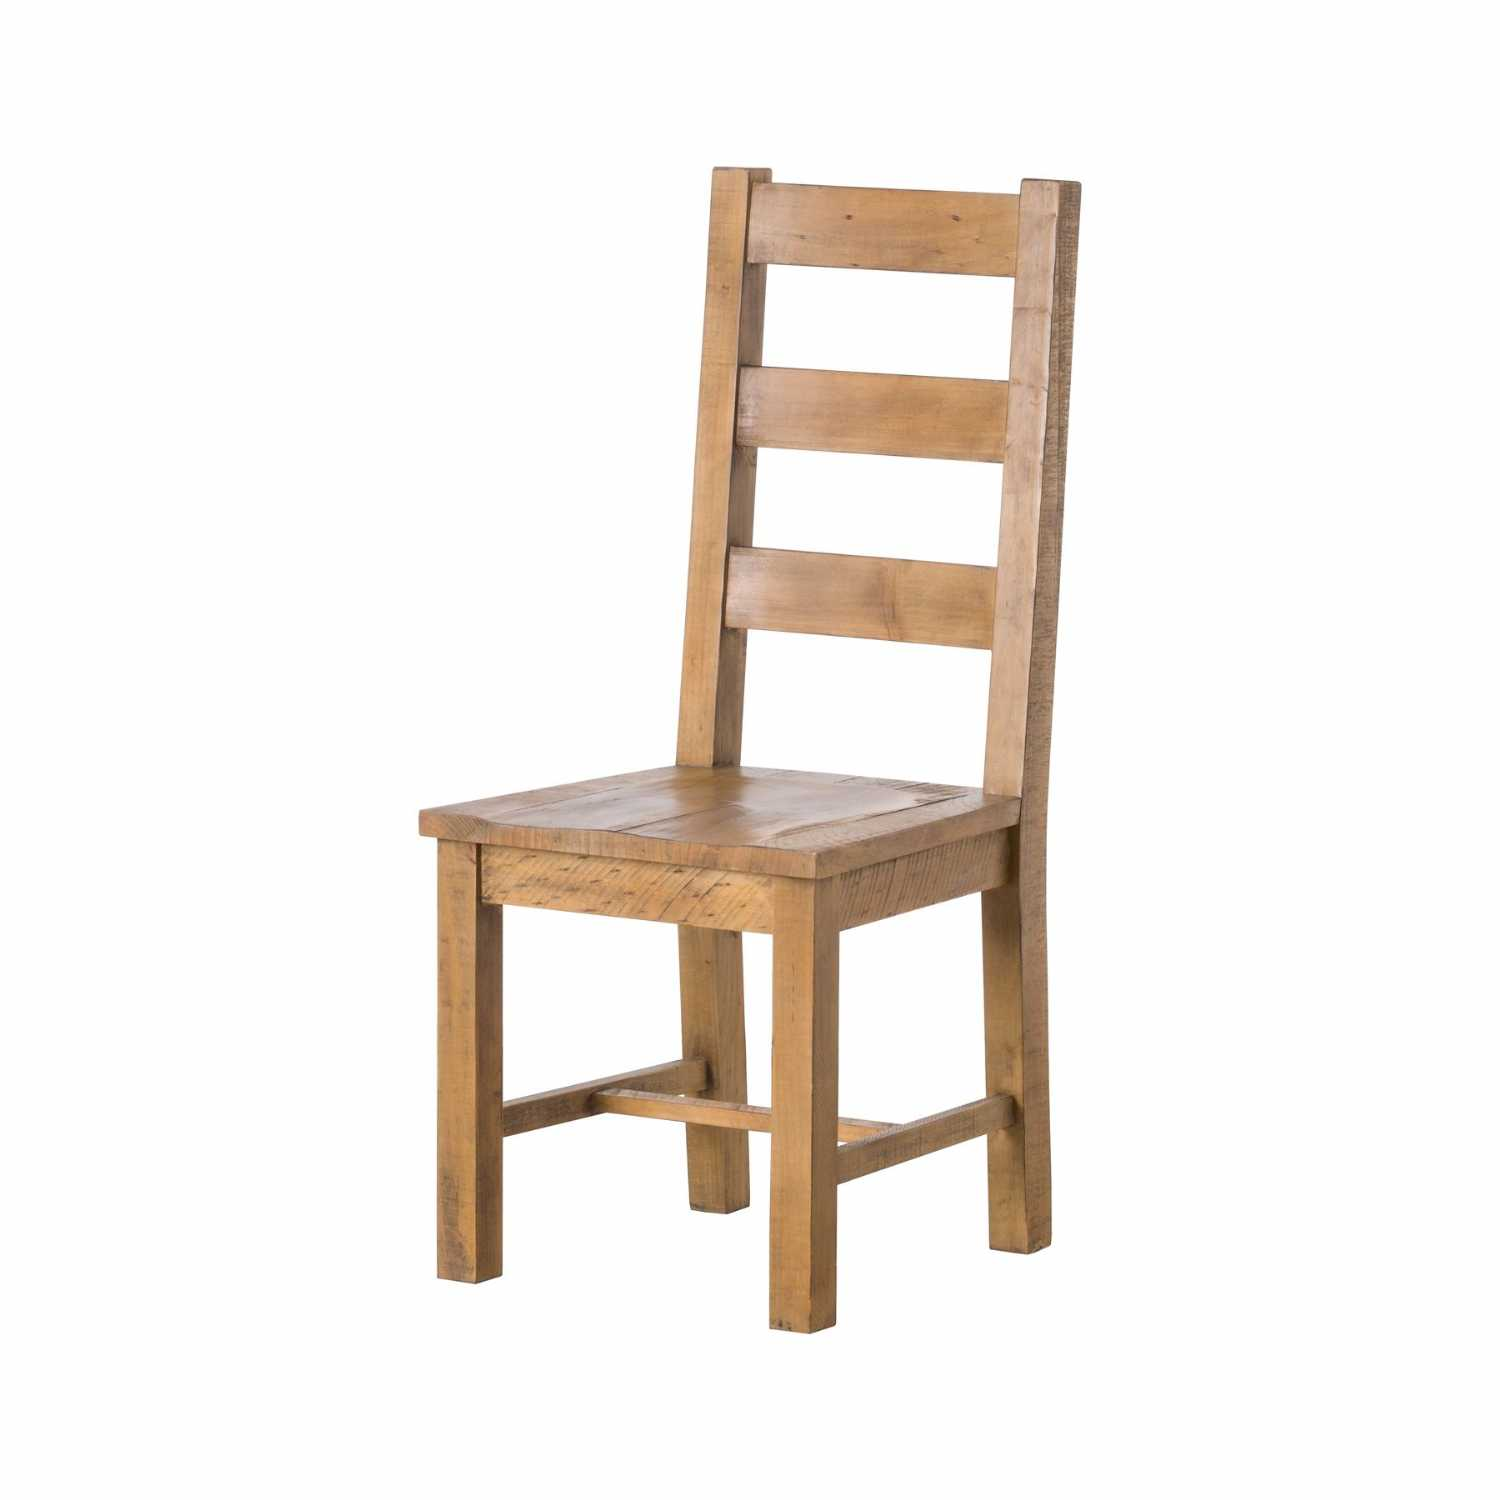 Rustic Reclaimed Natural Pine Wood Large Ladder Back Kitchen Dining Chair